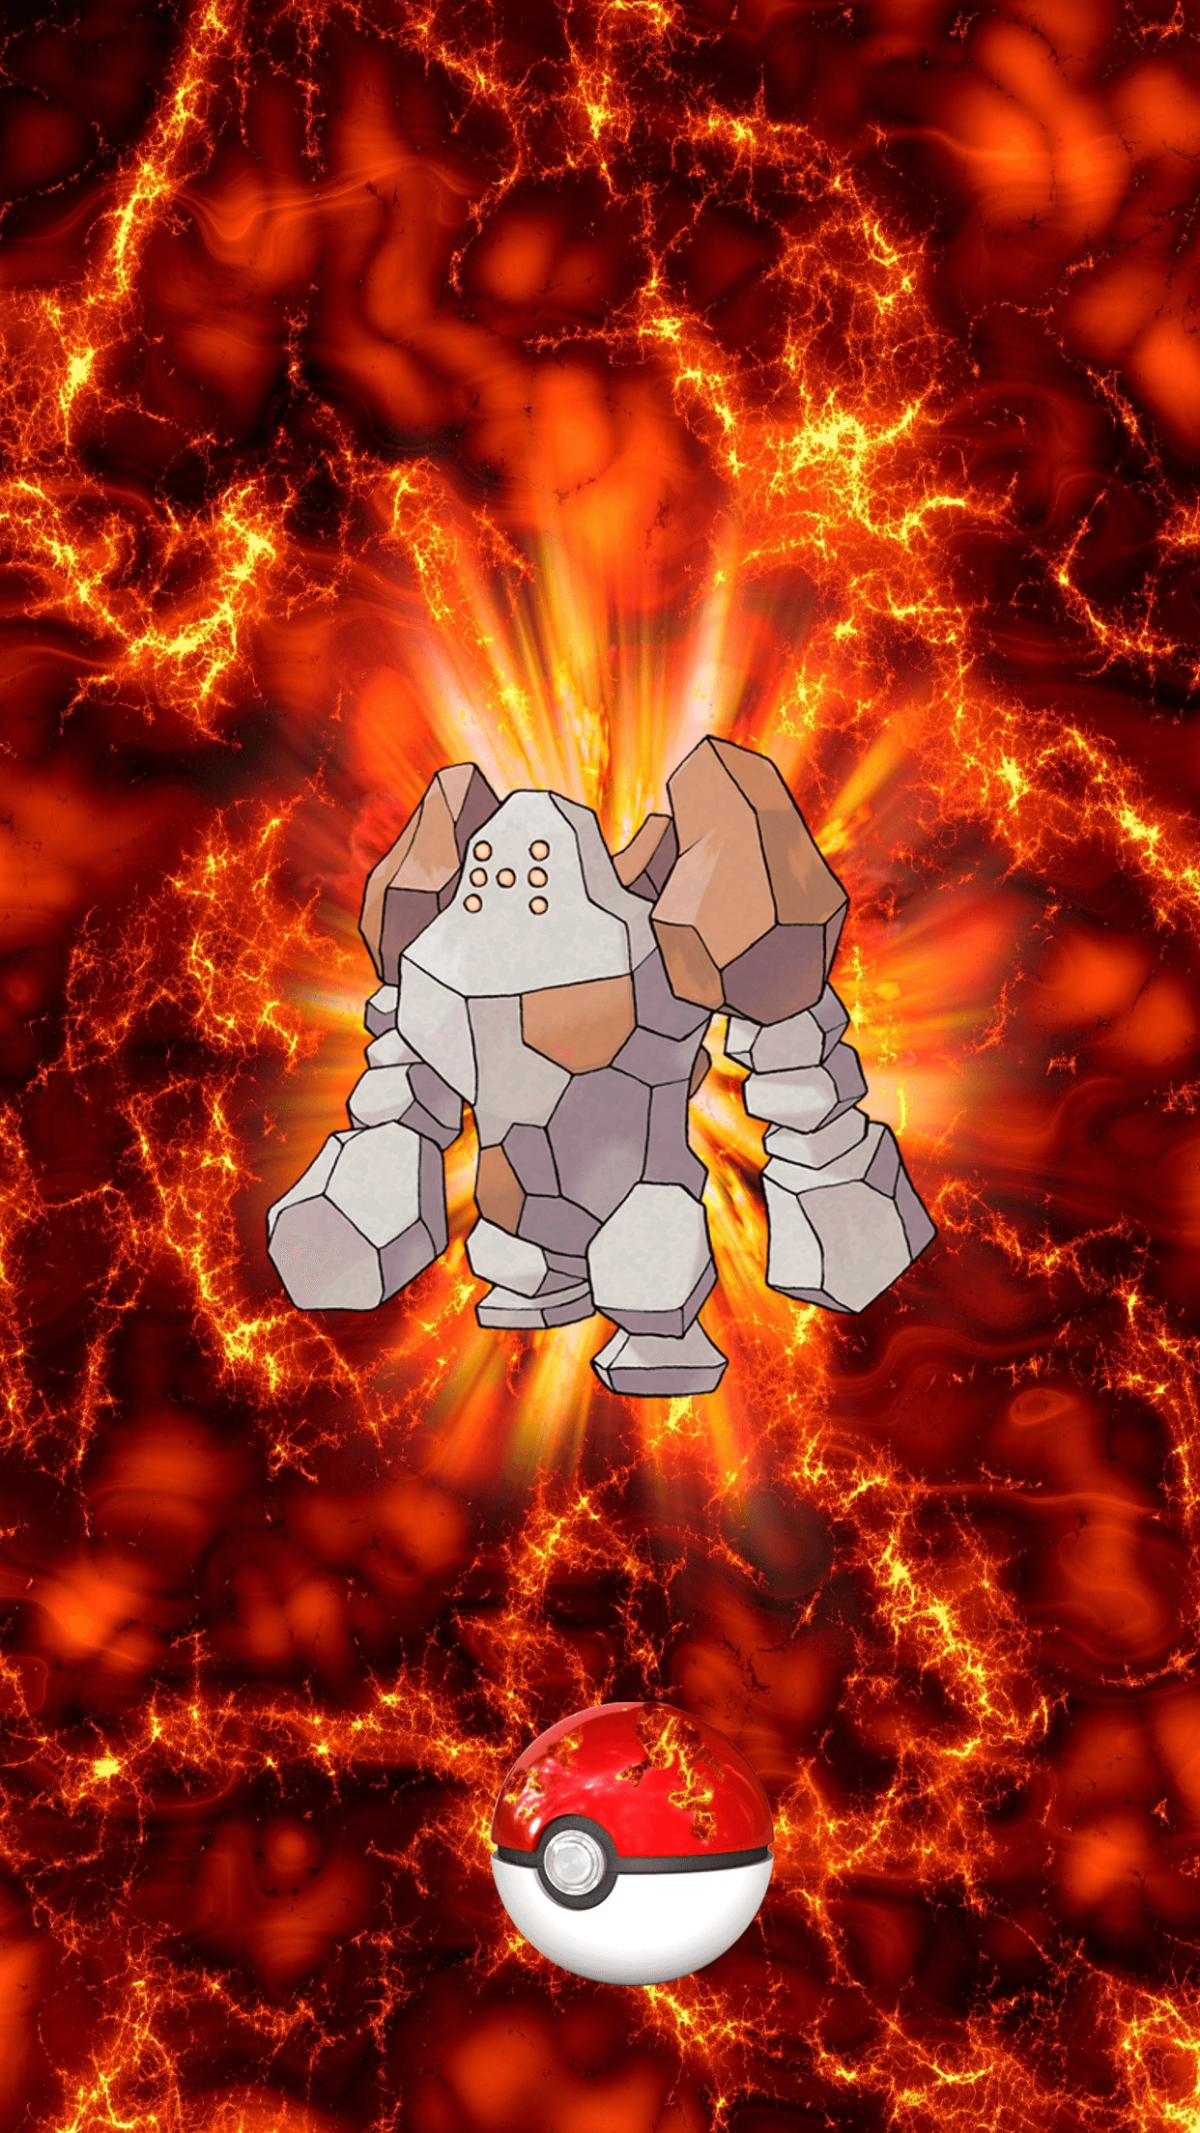 377 Fire Pokeball Regirock Regirock 6 | Wallpaper